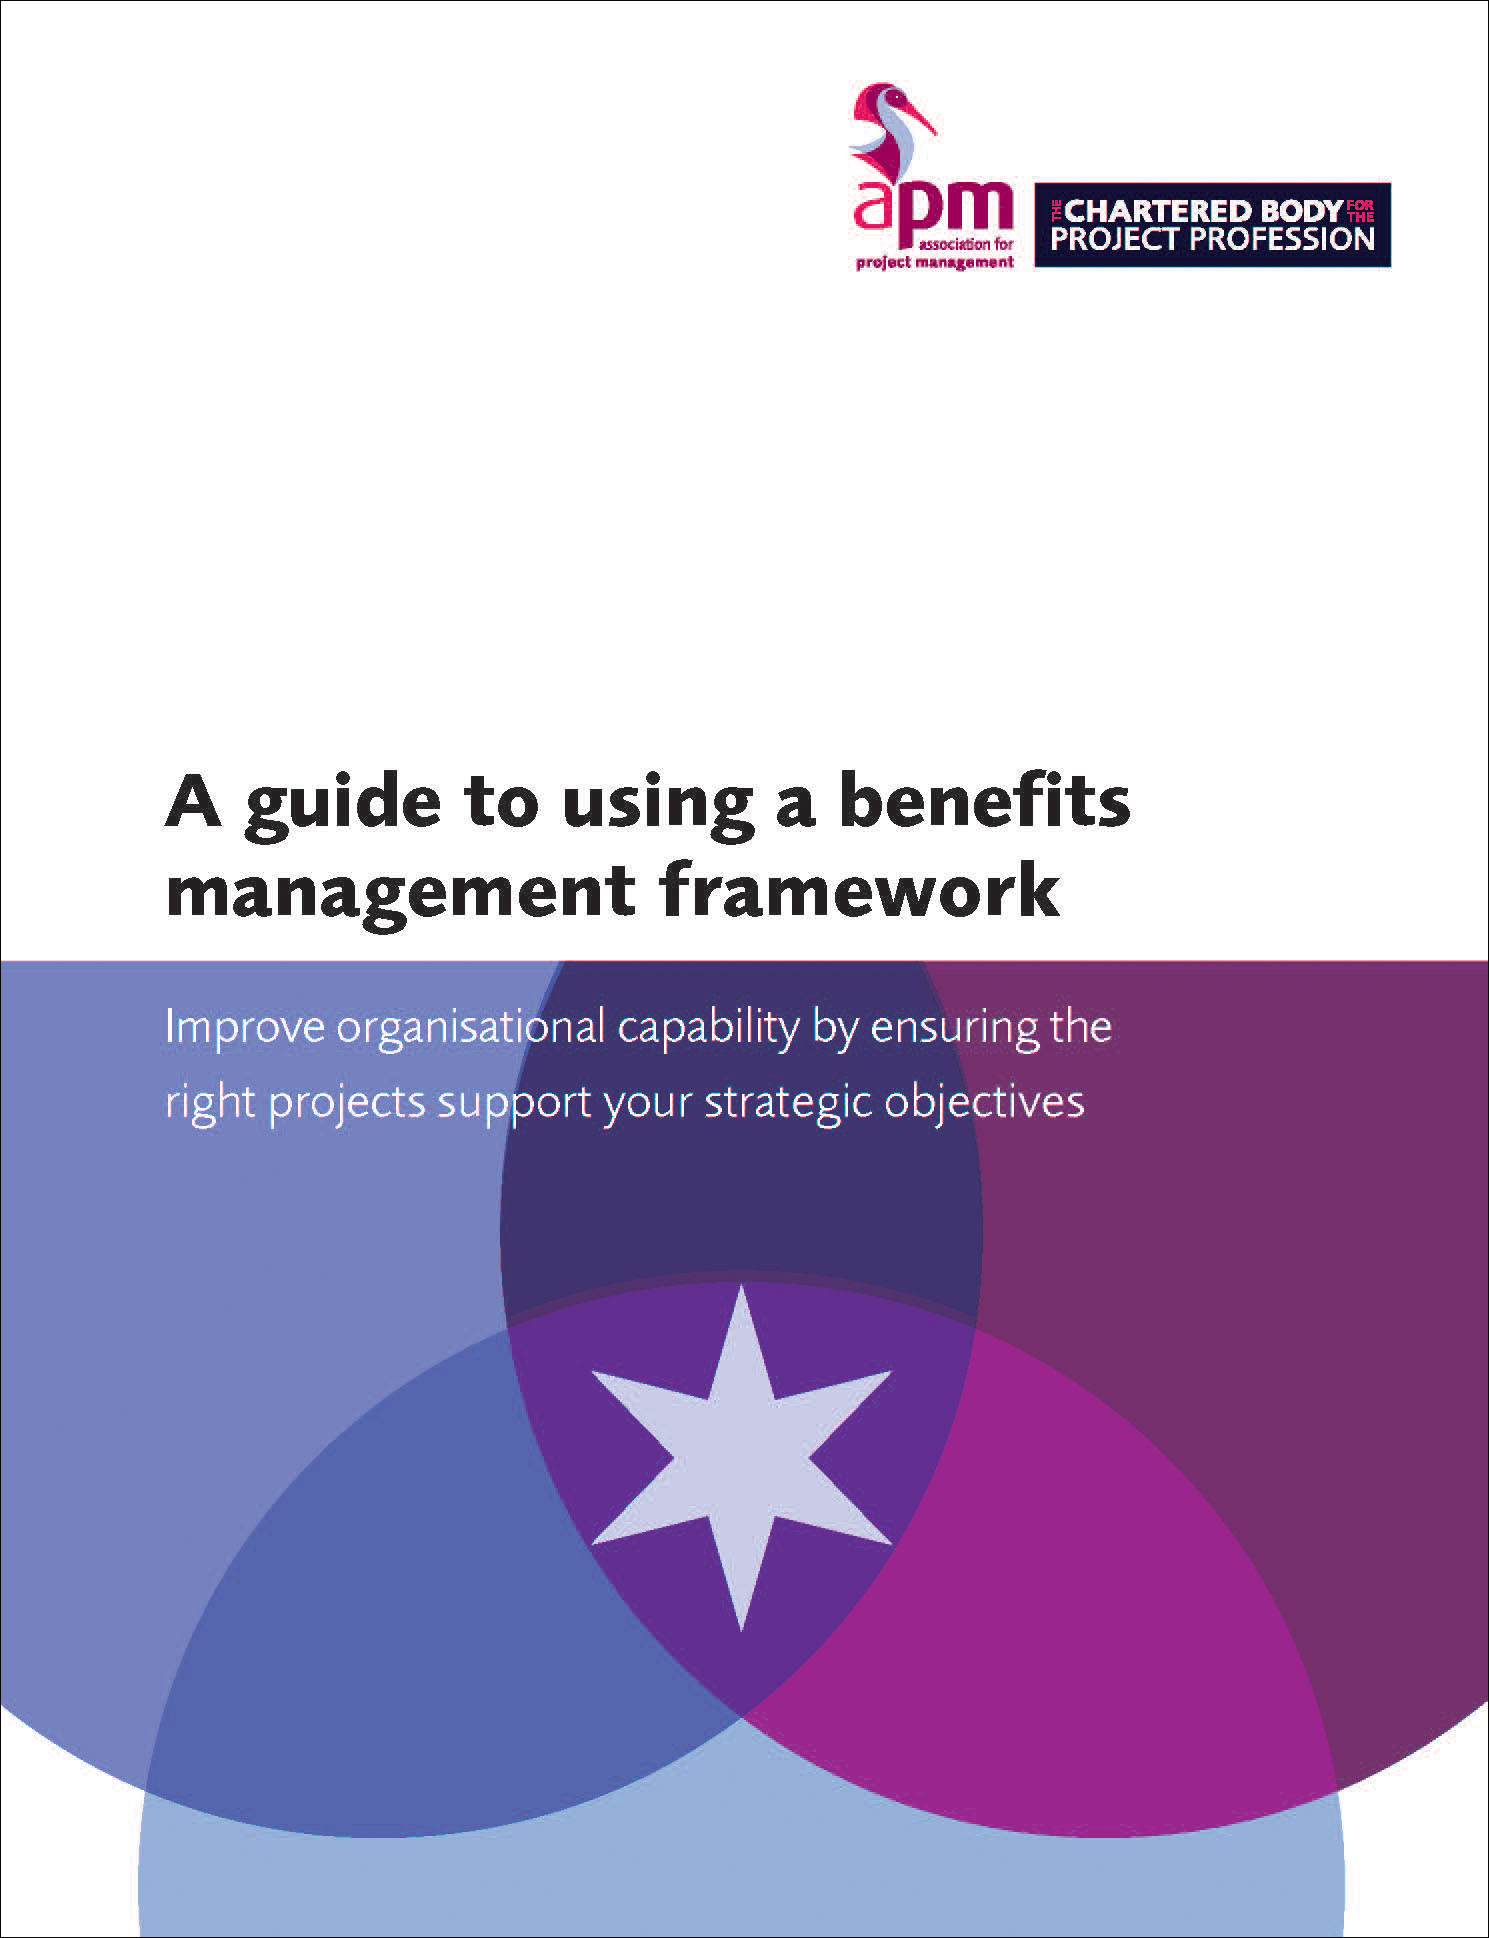 A guide to using a benefits management framework